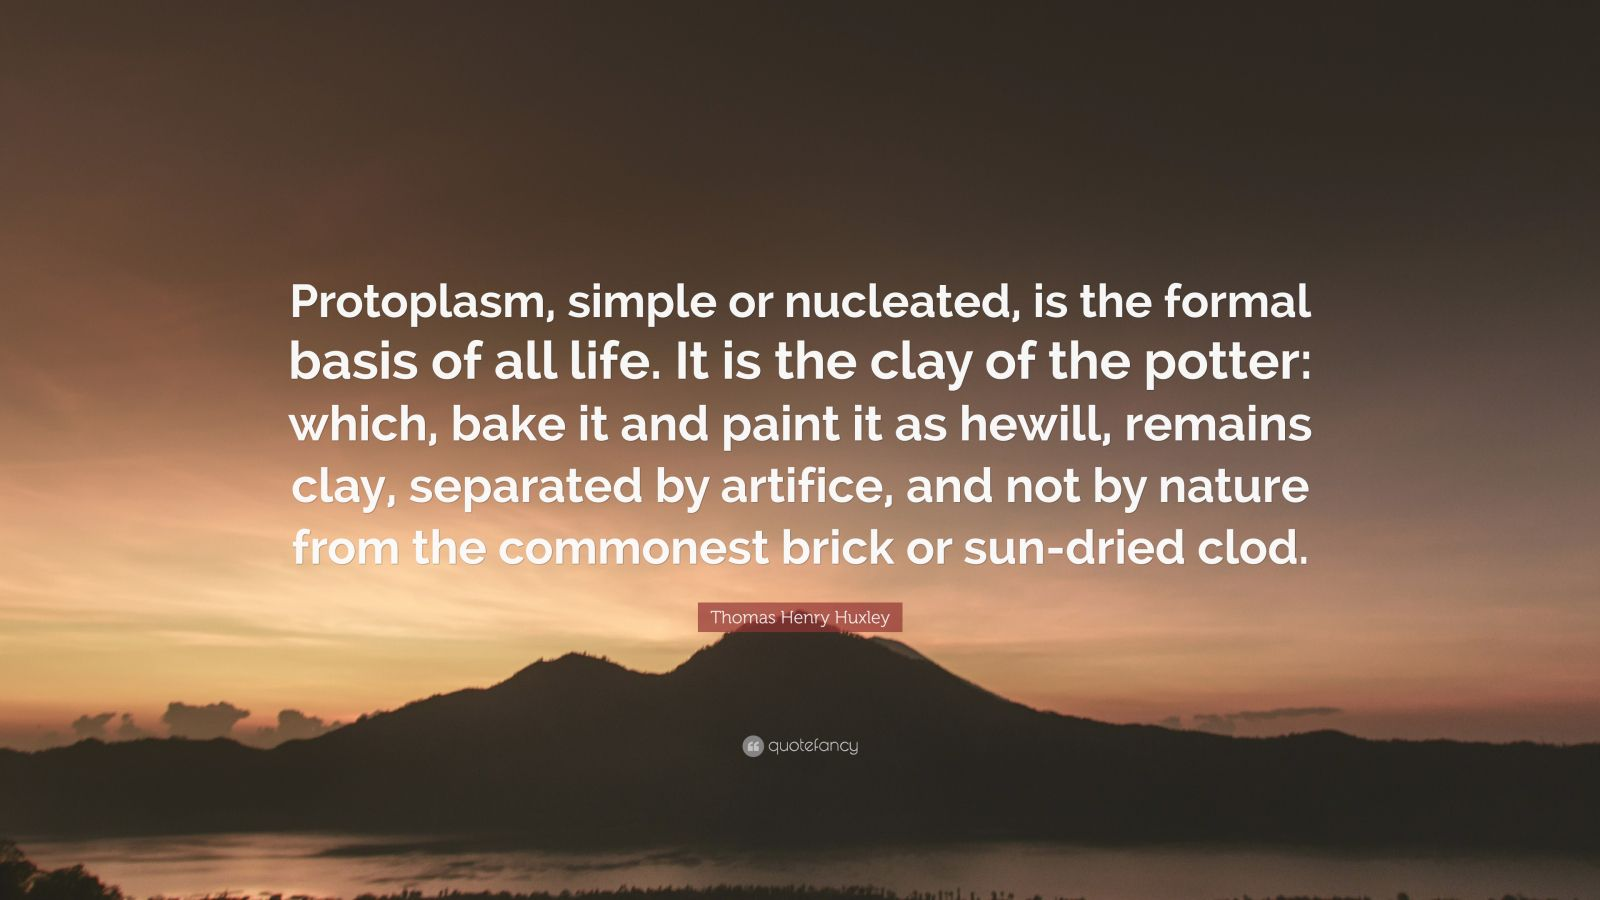 """Thomas Henry Huxley Quote: """"Protoplasm, simple or nucleated, is the formal basis of all life. It is the clay of the potter: which, bake it and paint it as hewill, remains clay, separated by artifice, and not by nature from the commonest brick or sun-dried clod."""""""